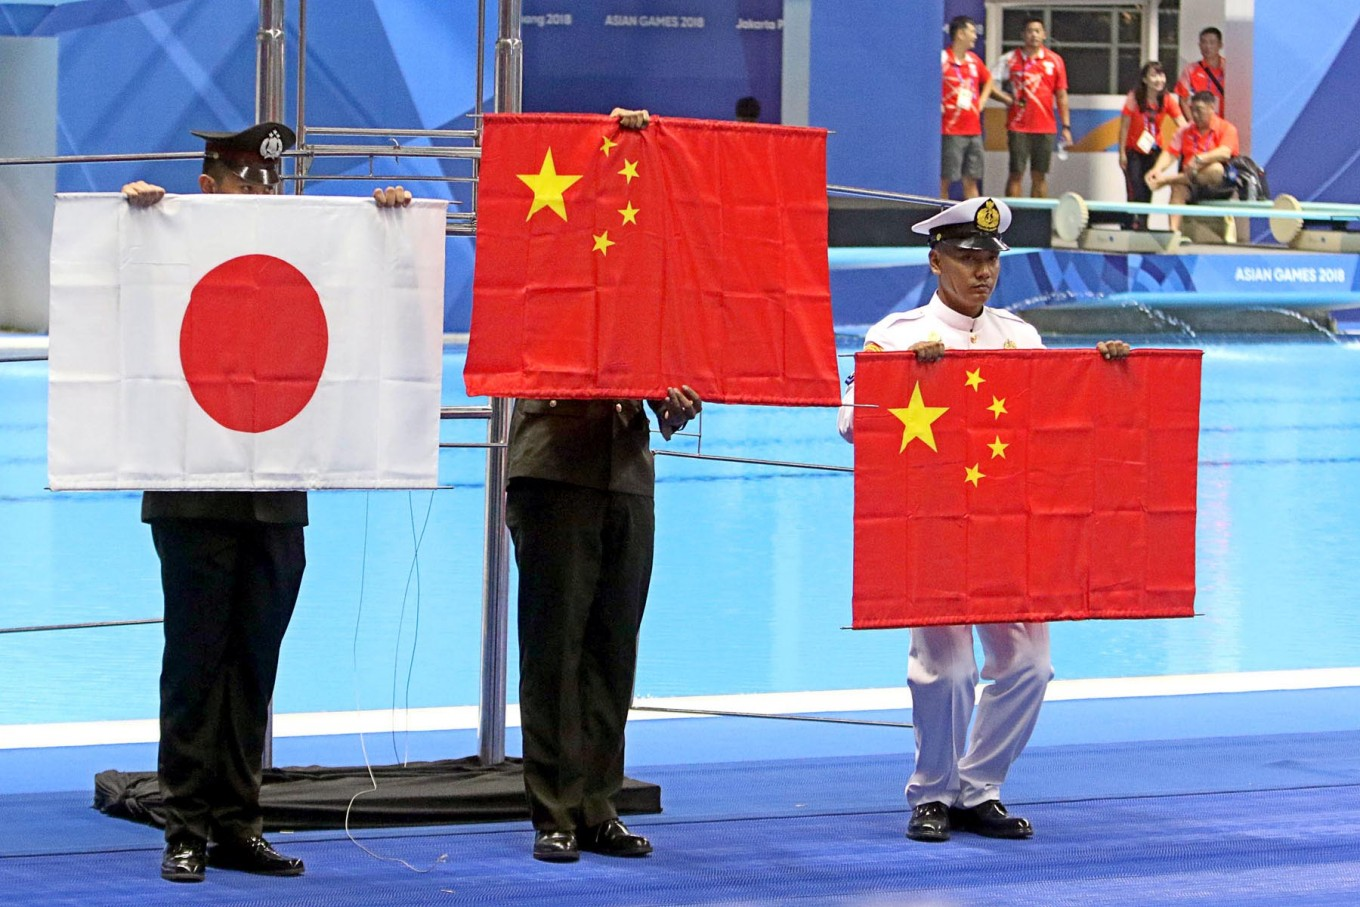 Officials hold the national flags of winning countries after they fell to the floor because of trouble with the flag pole. JP/Seto Wardhana